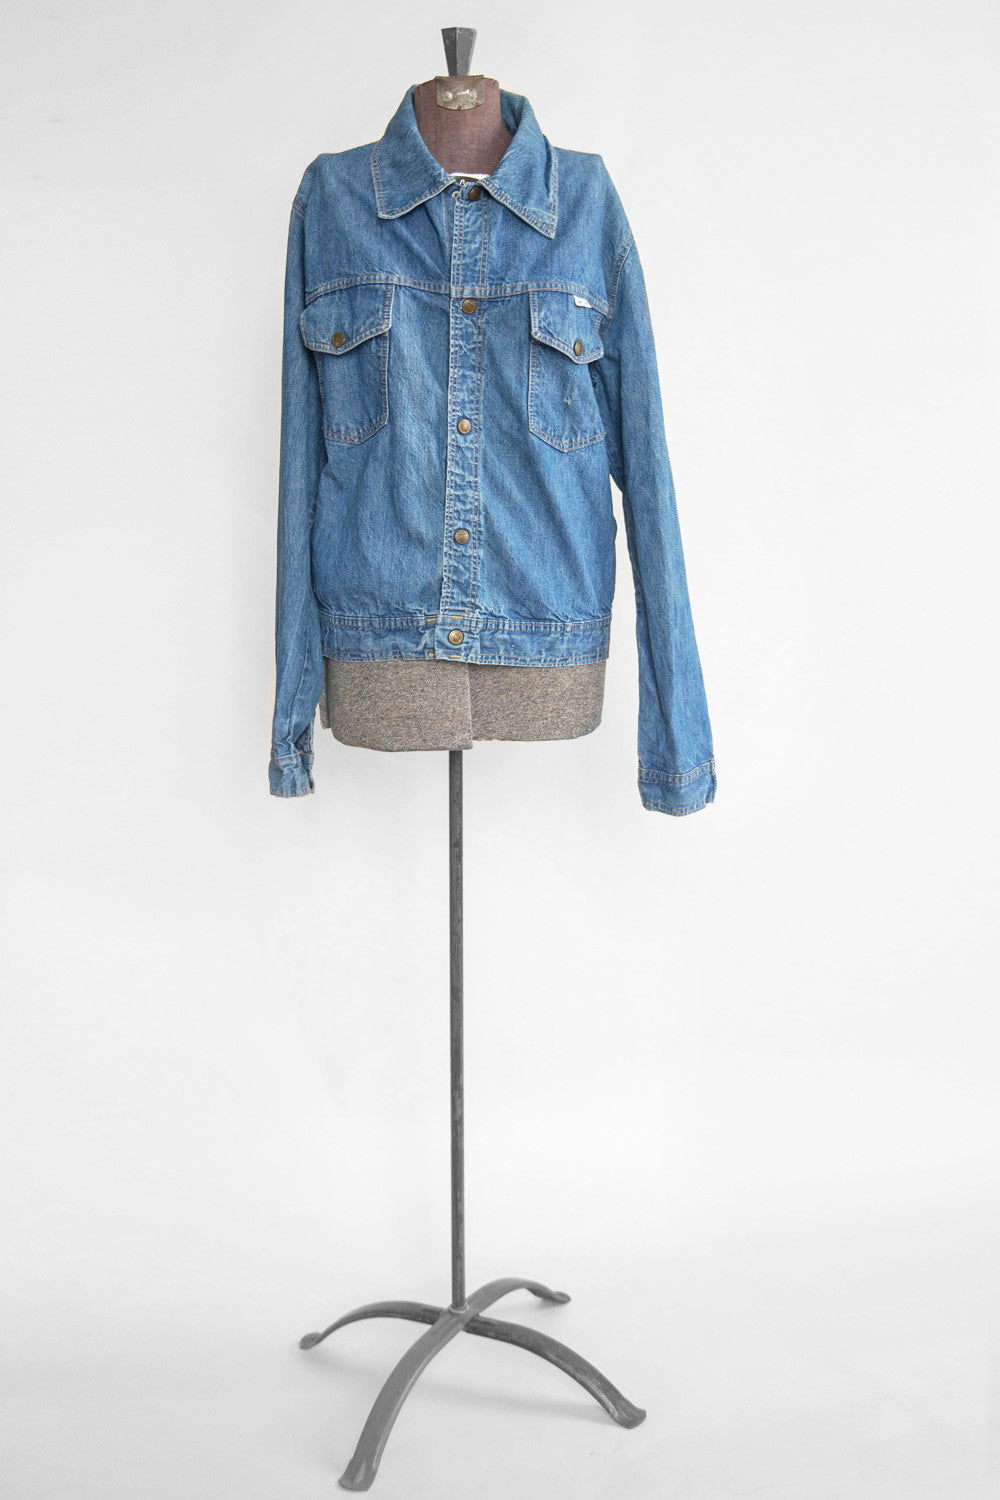 Live Ins Denim Jacket - Vintage Women's Denim Jacket